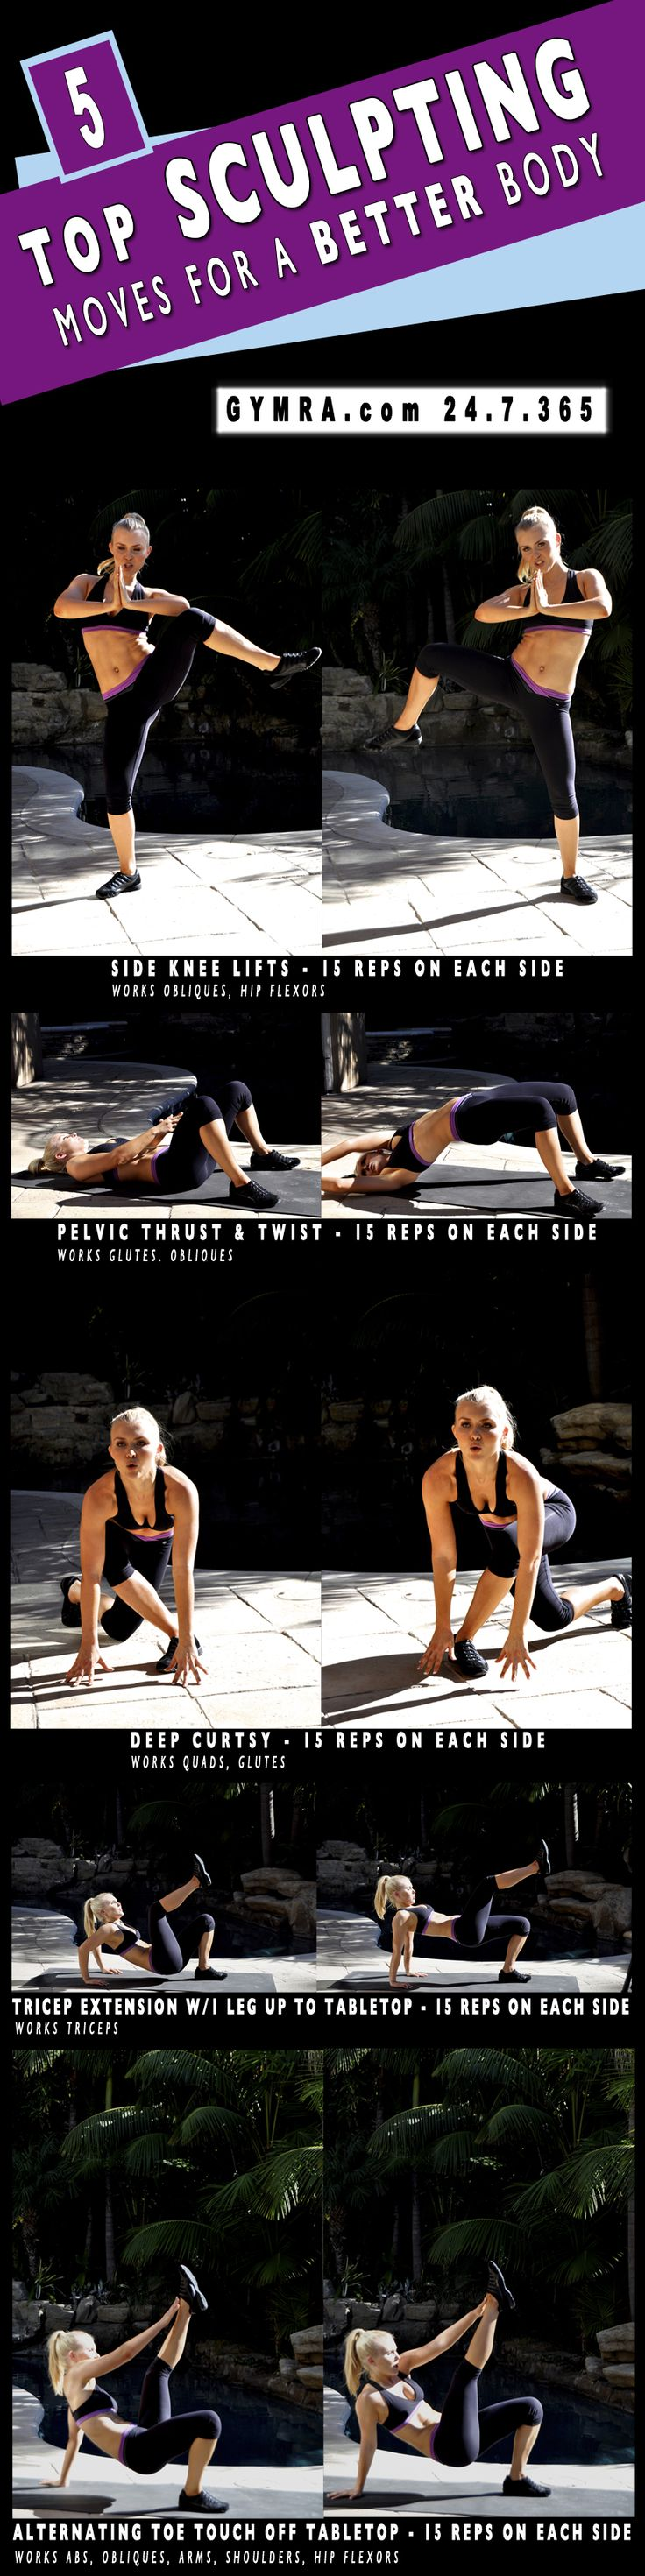 http://www.gymra.com/blog/5-top-sculpting-moves-for-a-better-body/ - 5 Top Sculpting Moves for a Better Body